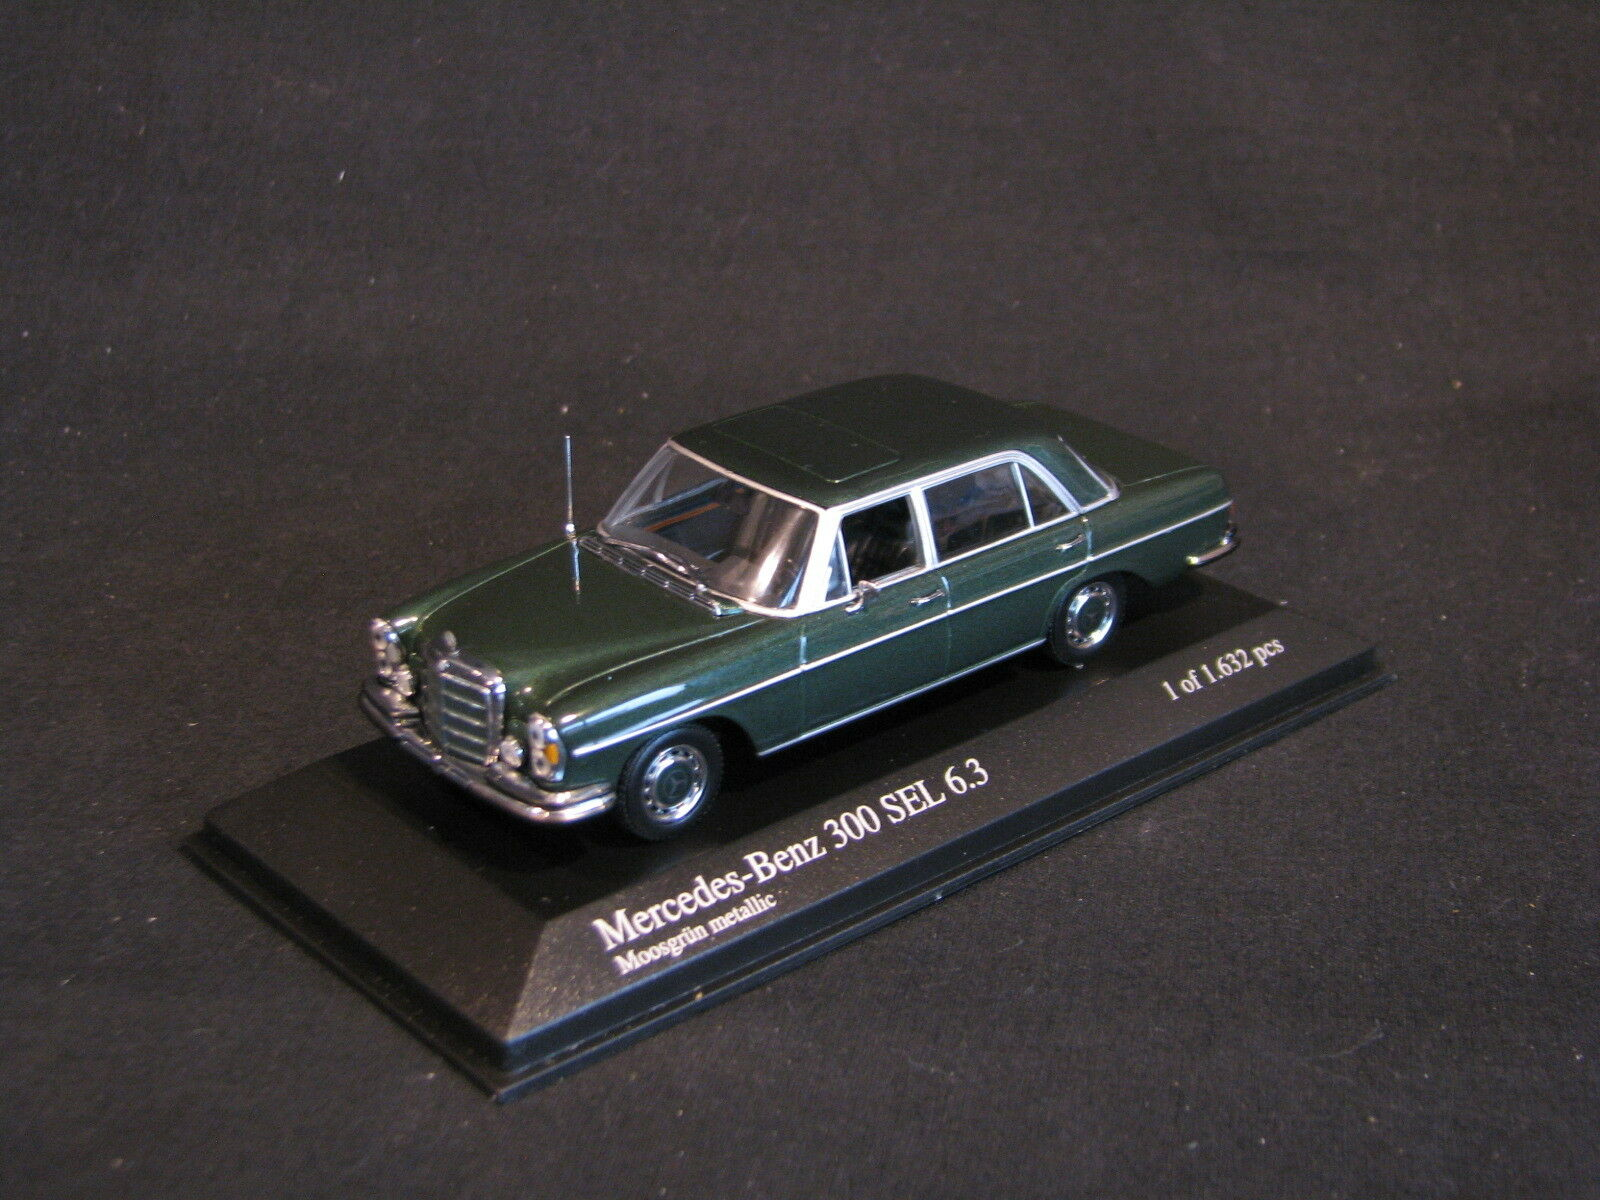 Minichamps Mercedes-Benz 300 SEL 6.3 1968 1 43 verde Metallic (JS)